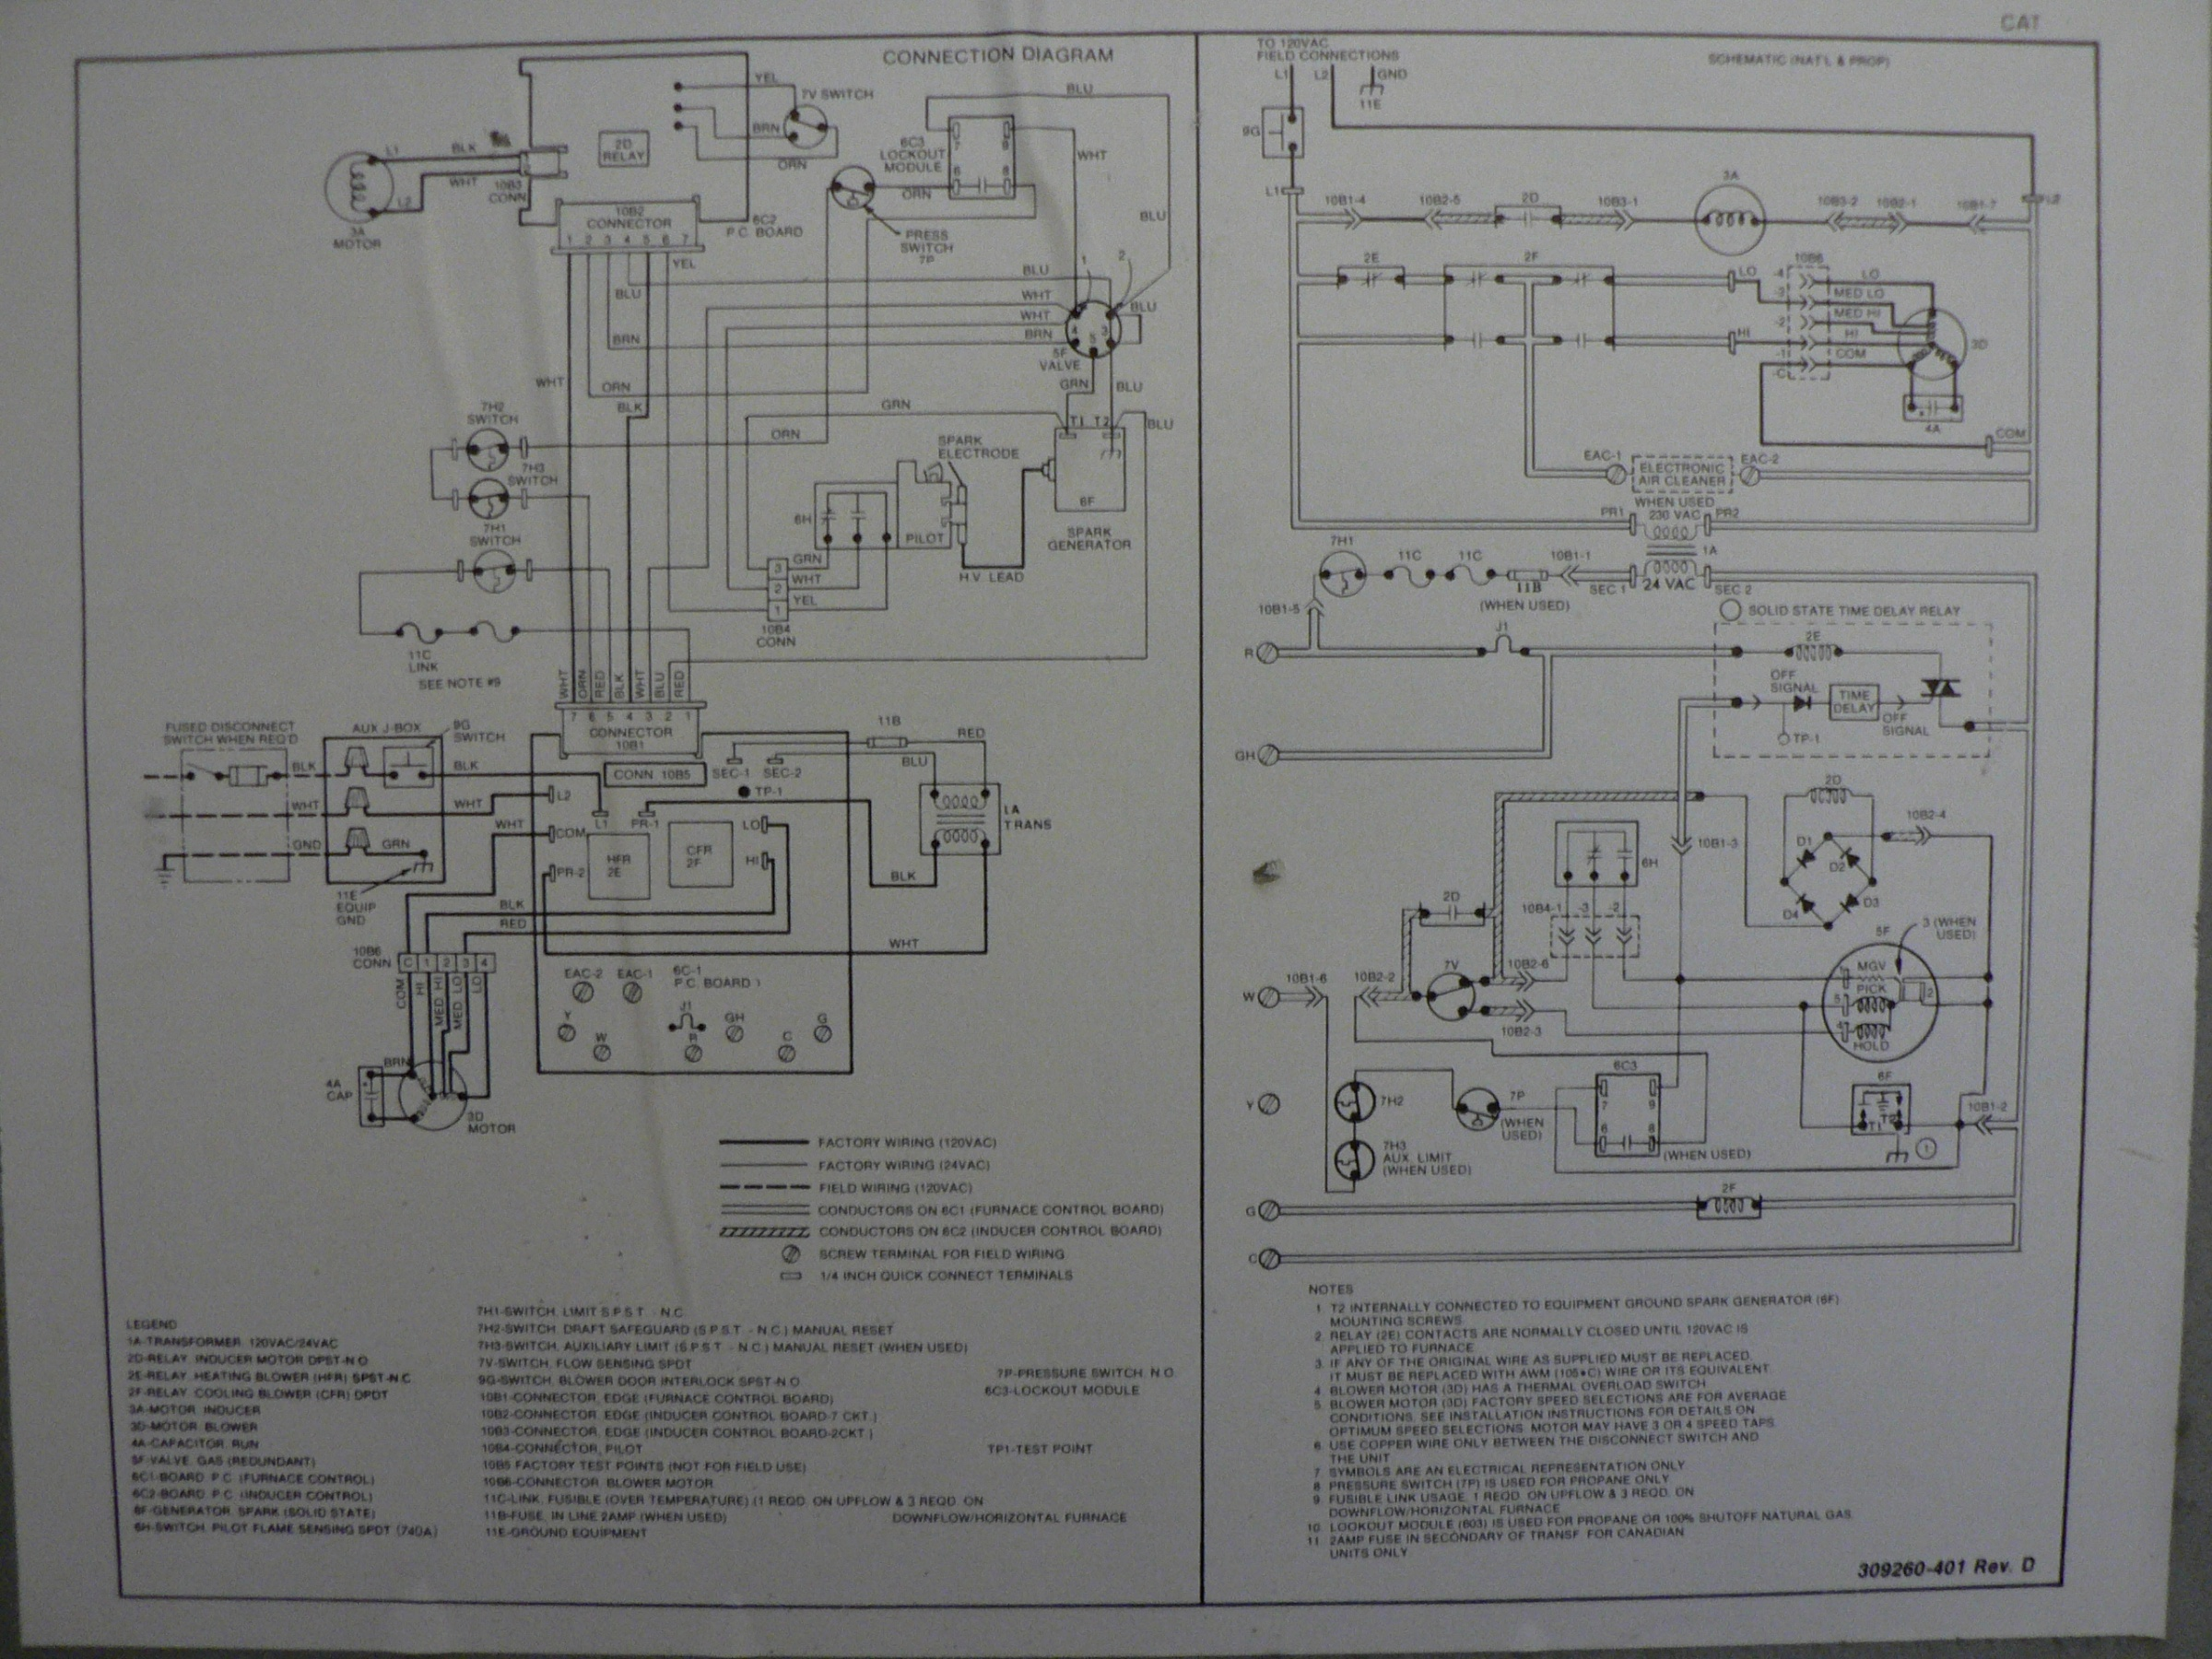 Furnace Wiring Diagram As Well Carrier Electric Furnace Wiring Diagram